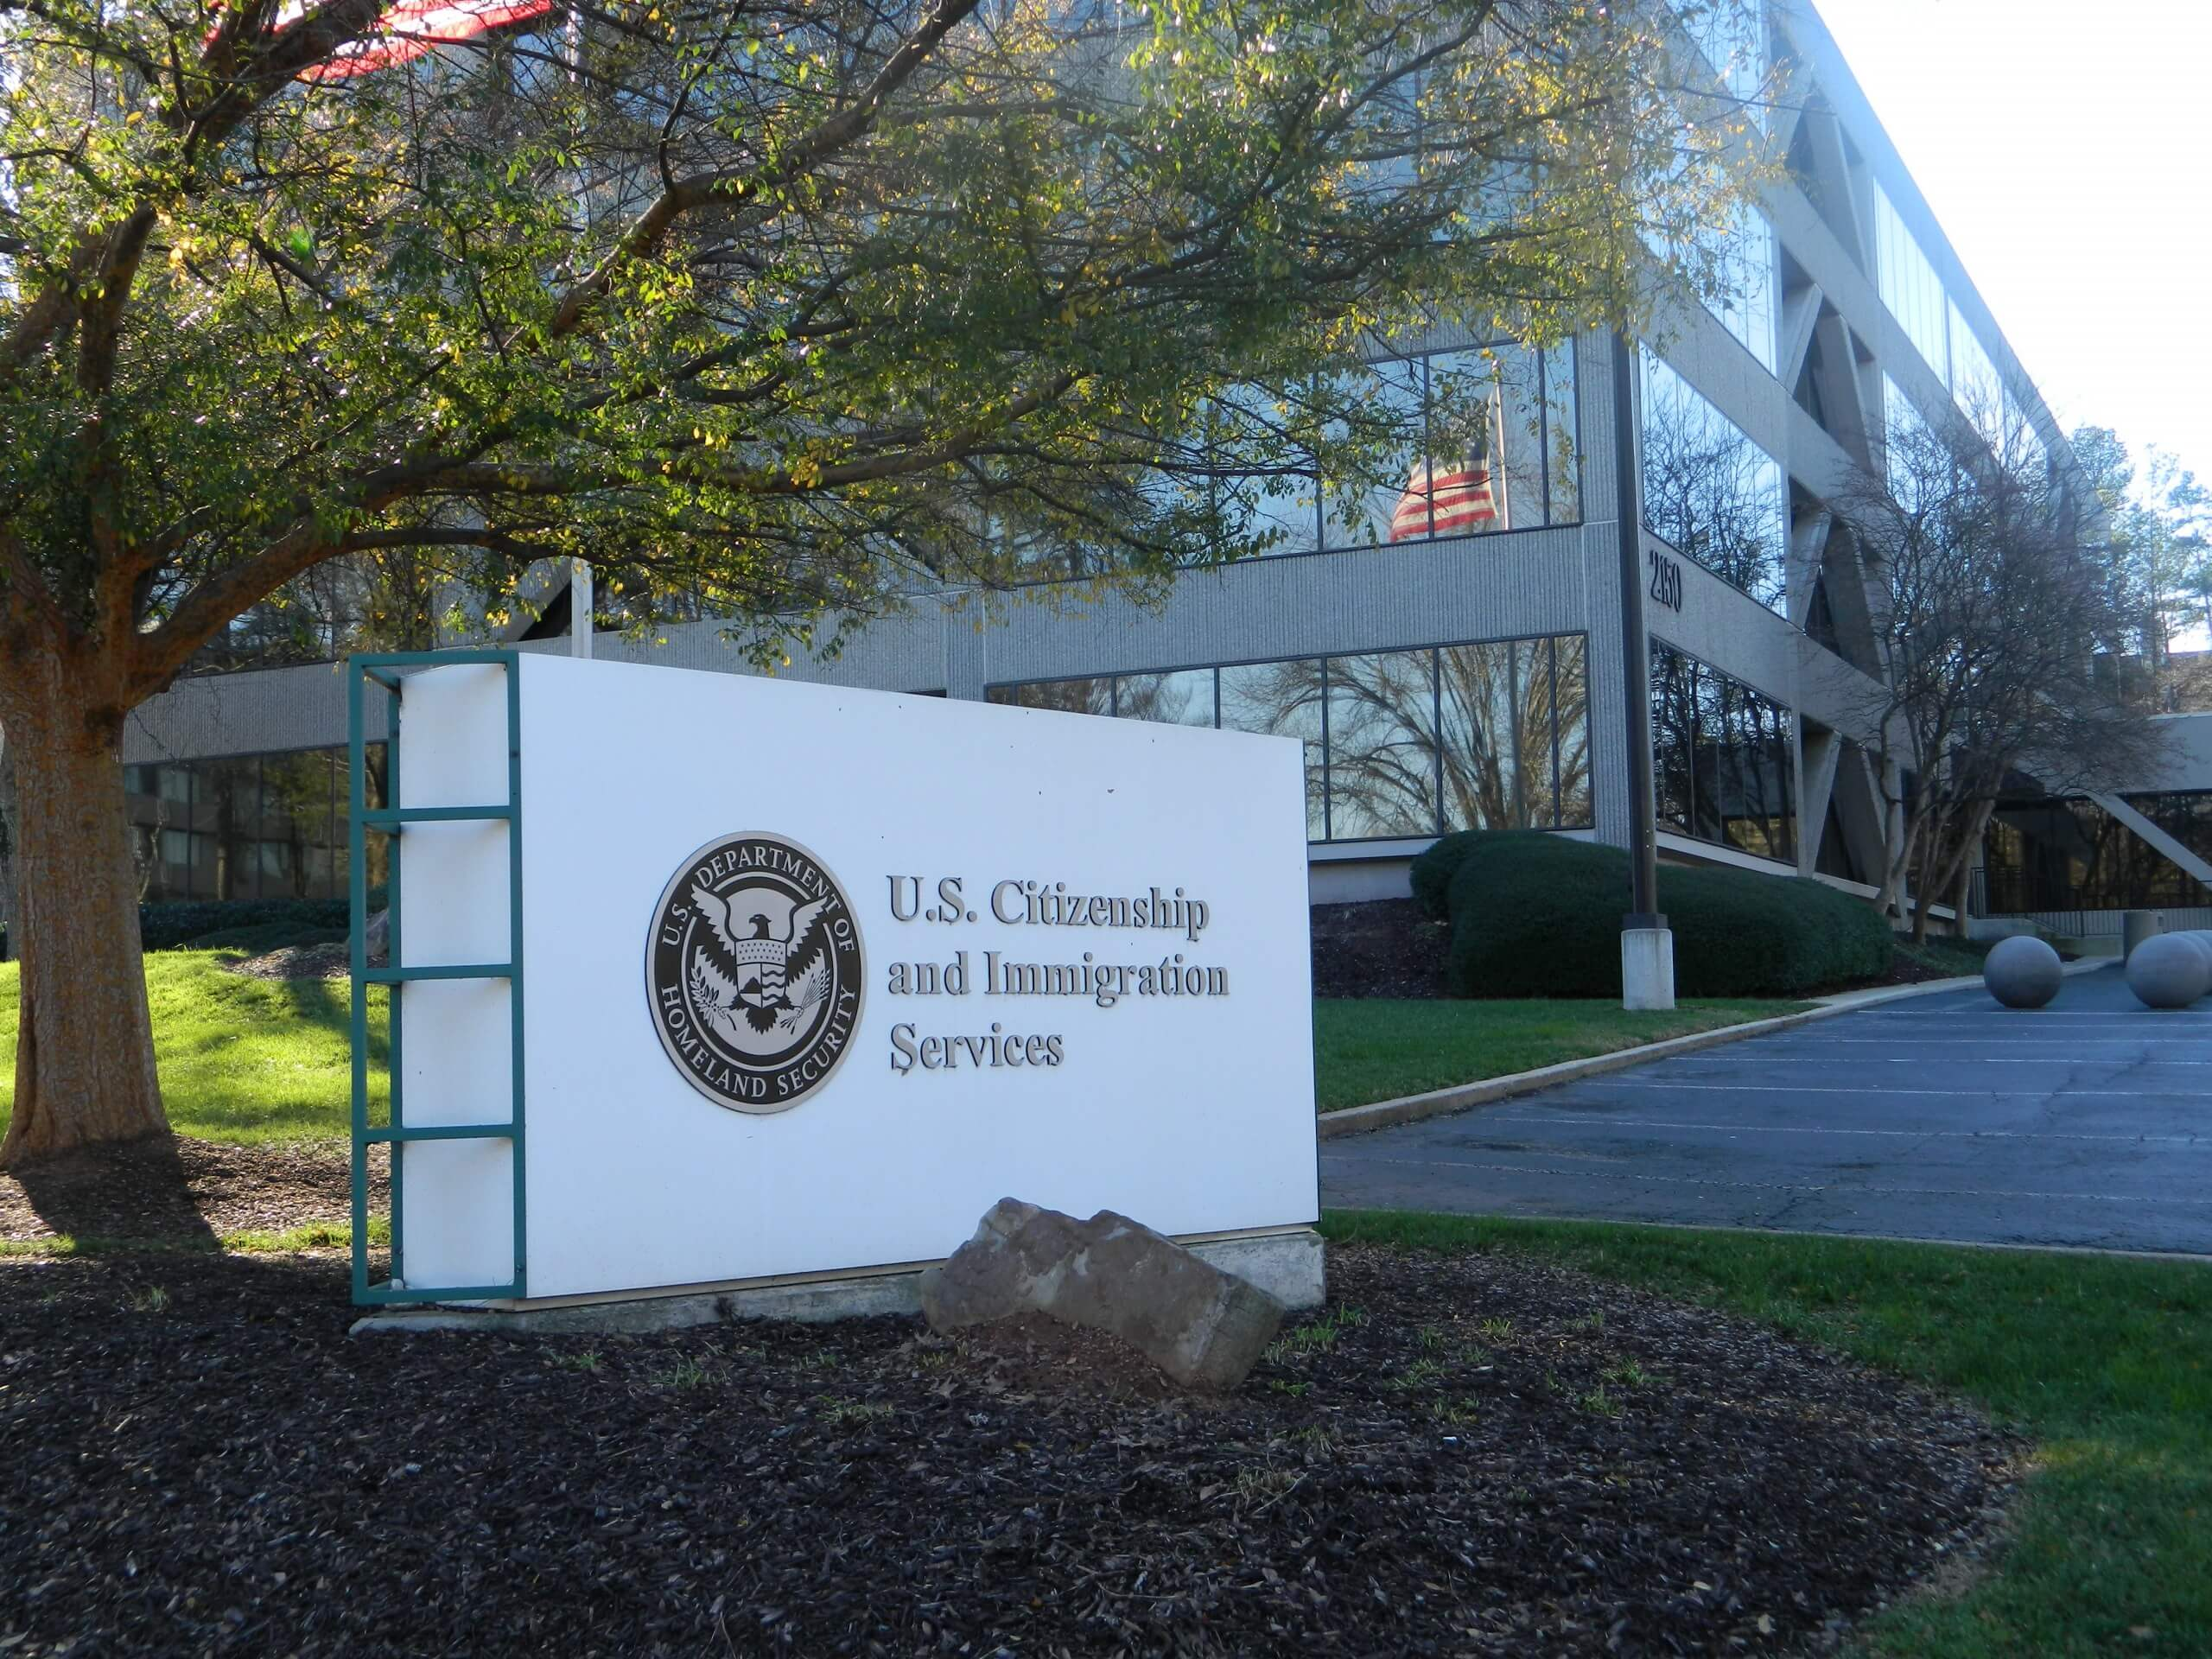 H-1B Visa Changes Could Allow Tech Companies to Hire More Overseas Specialists